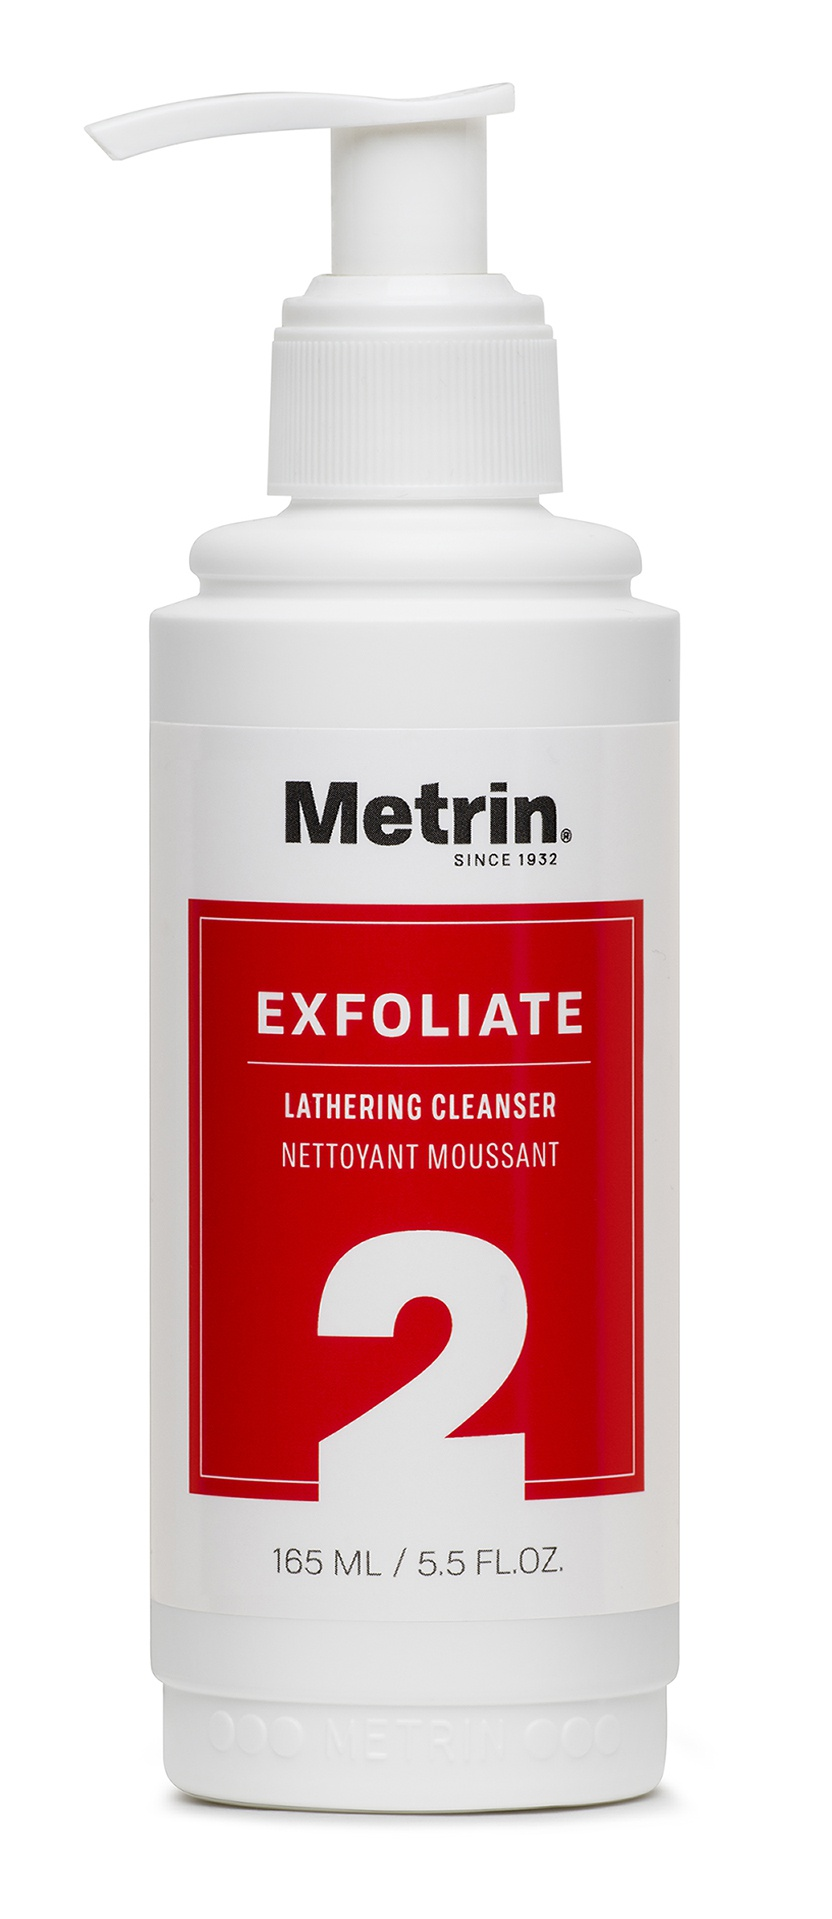 Metrin Lathering Cleanser For Her